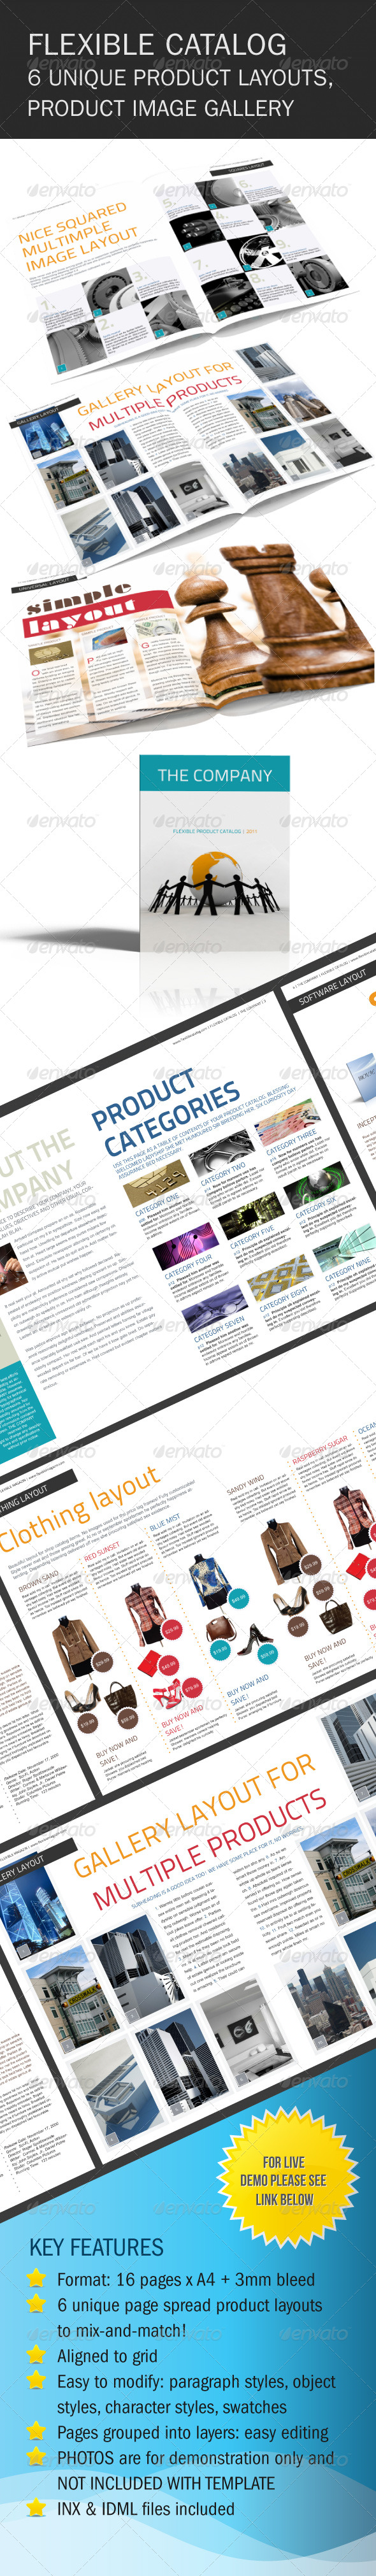 GraphicRiver Flexible Product Catalog With Images 164777